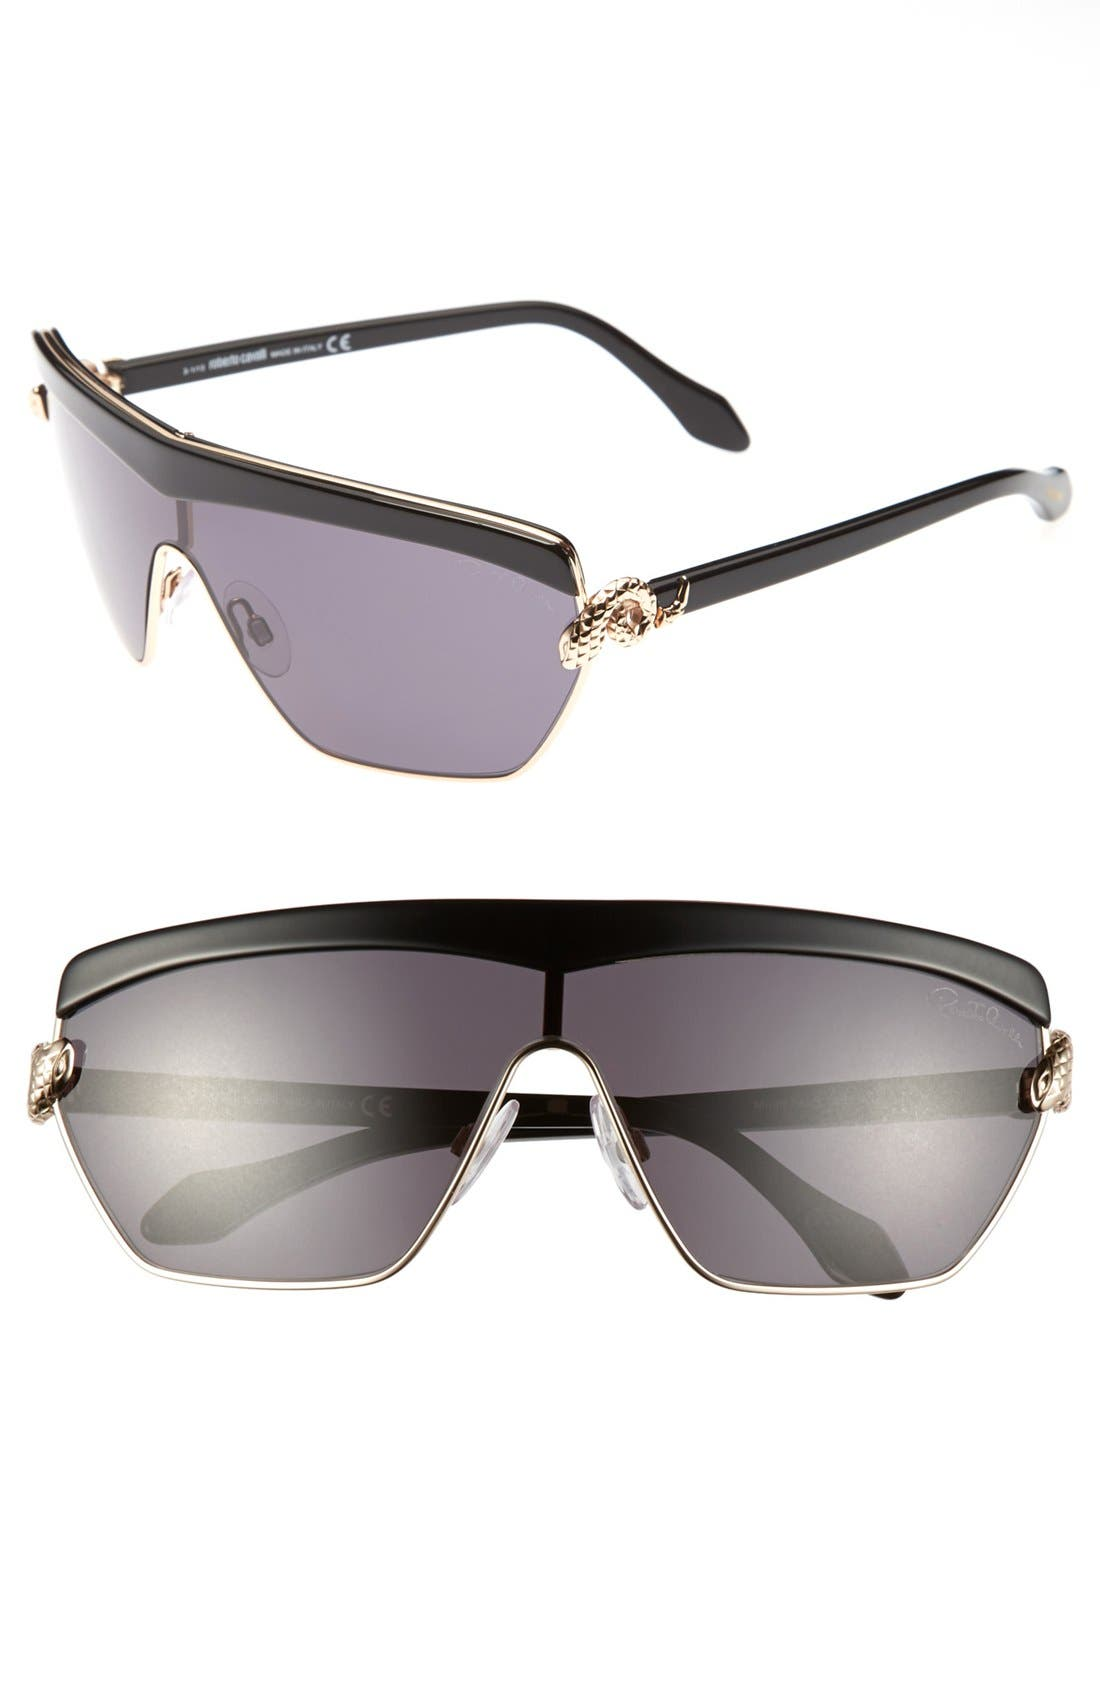 Alternate Image 1 Selected - Roberto Cavalli 'Mirihi' 139mm Shield Sunglasses